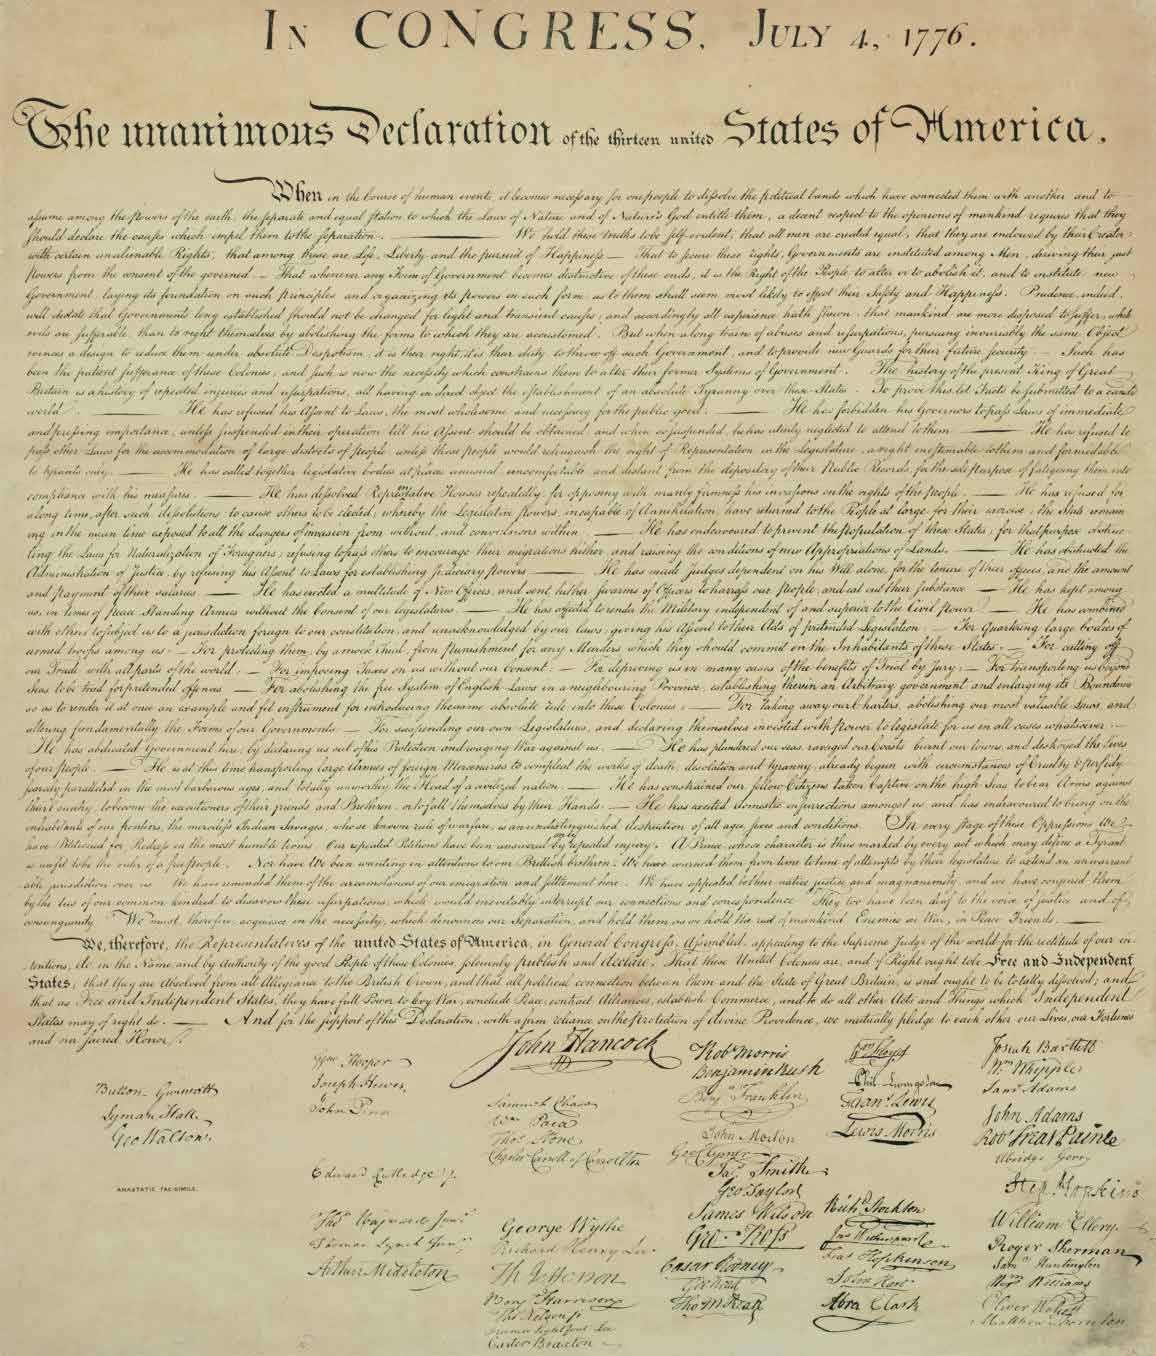 """[DECLARATION OF INDEPENDENCE]. In Congress, July 4, 1776. The Unanimous Declaration of the Thirteen United States of America. When in the Course of human events... No place, [Philadelphia: Robert P. Smith at the Anastatic Press, 144 Chestnut Street], n.d. [1846]. Imprint """"Anastatic fac-simile"""" in lower left."""